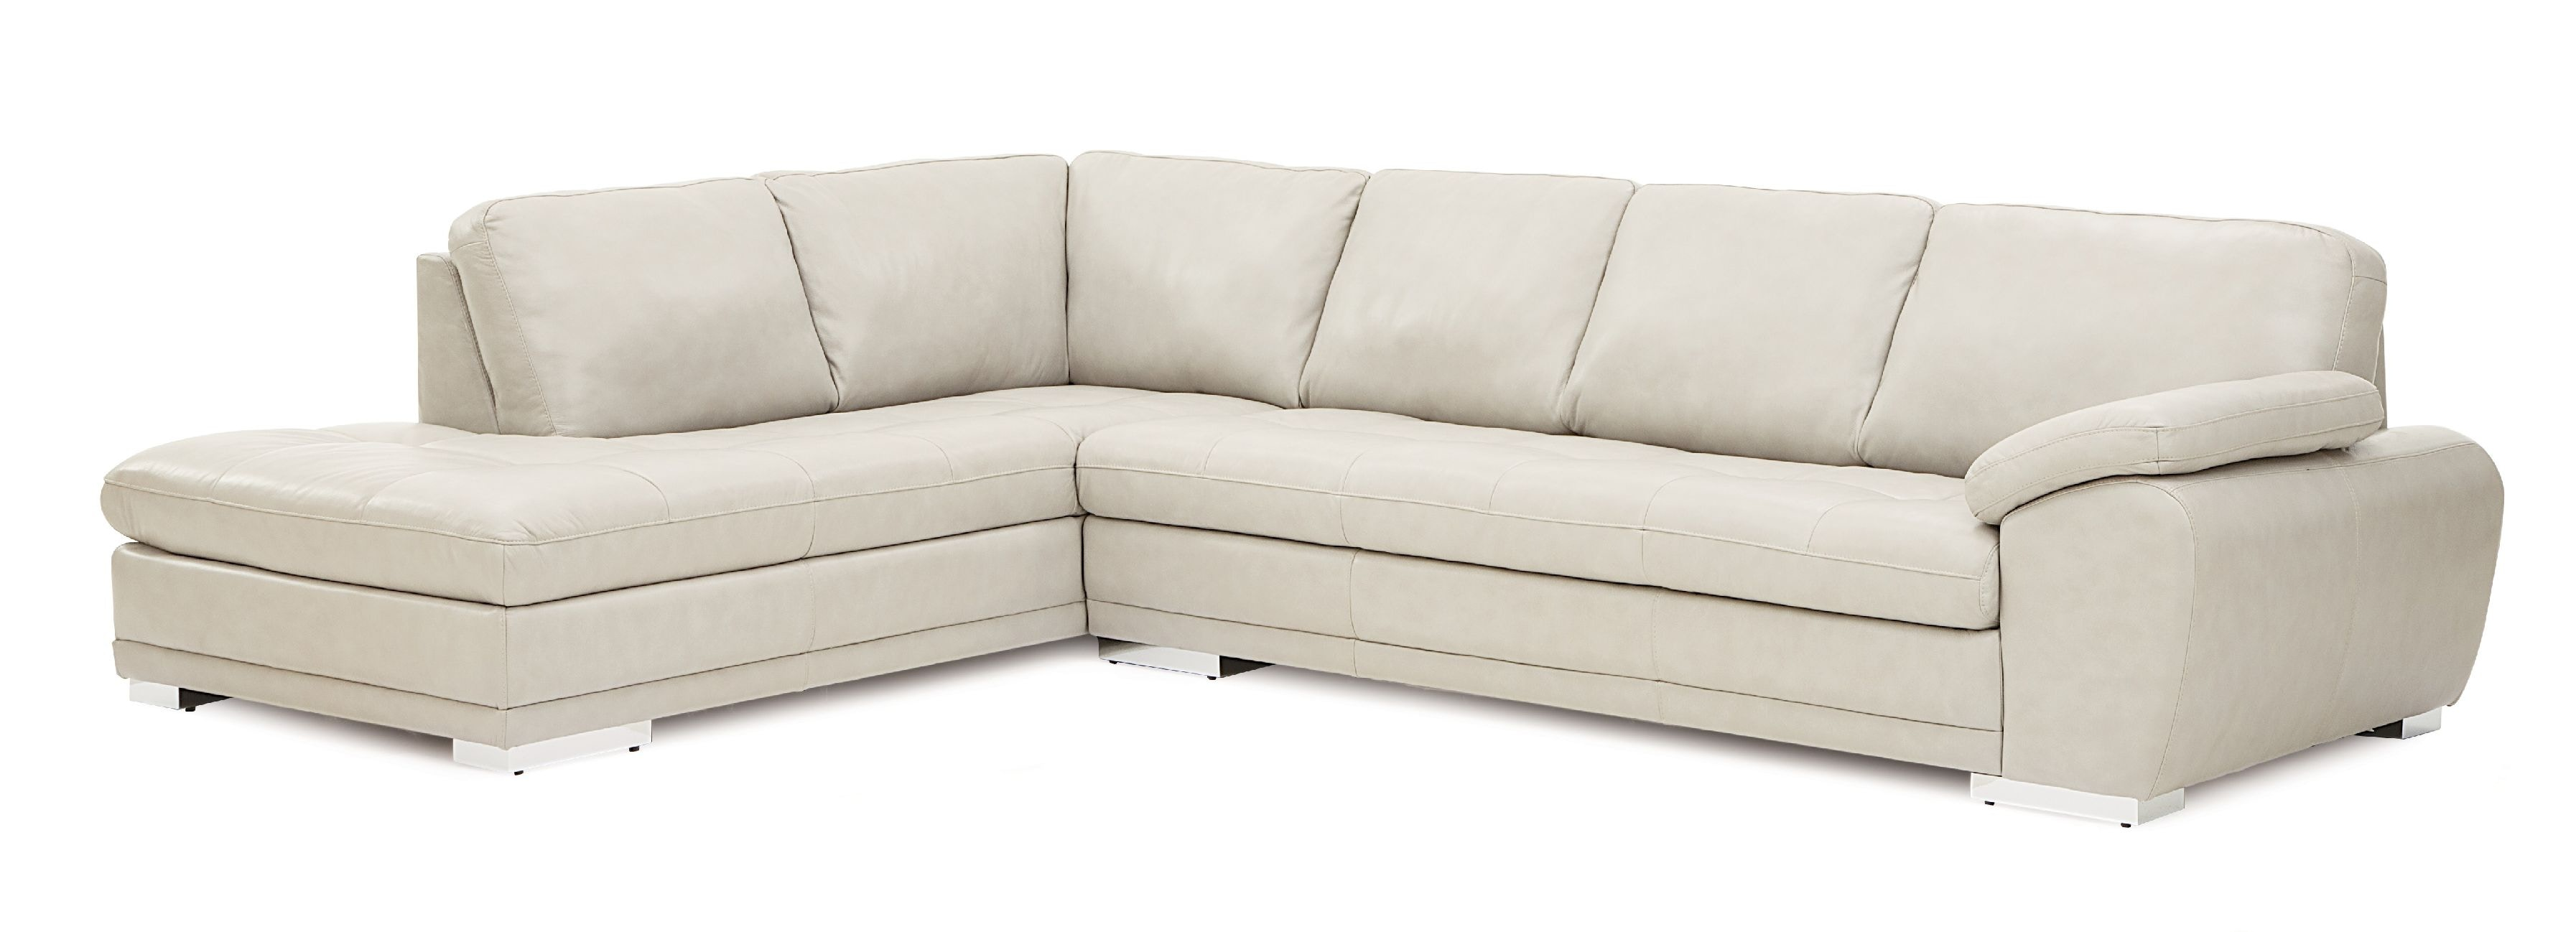 Standard Sofa Daley Dual Reclining Sofa By Upgrade Available My